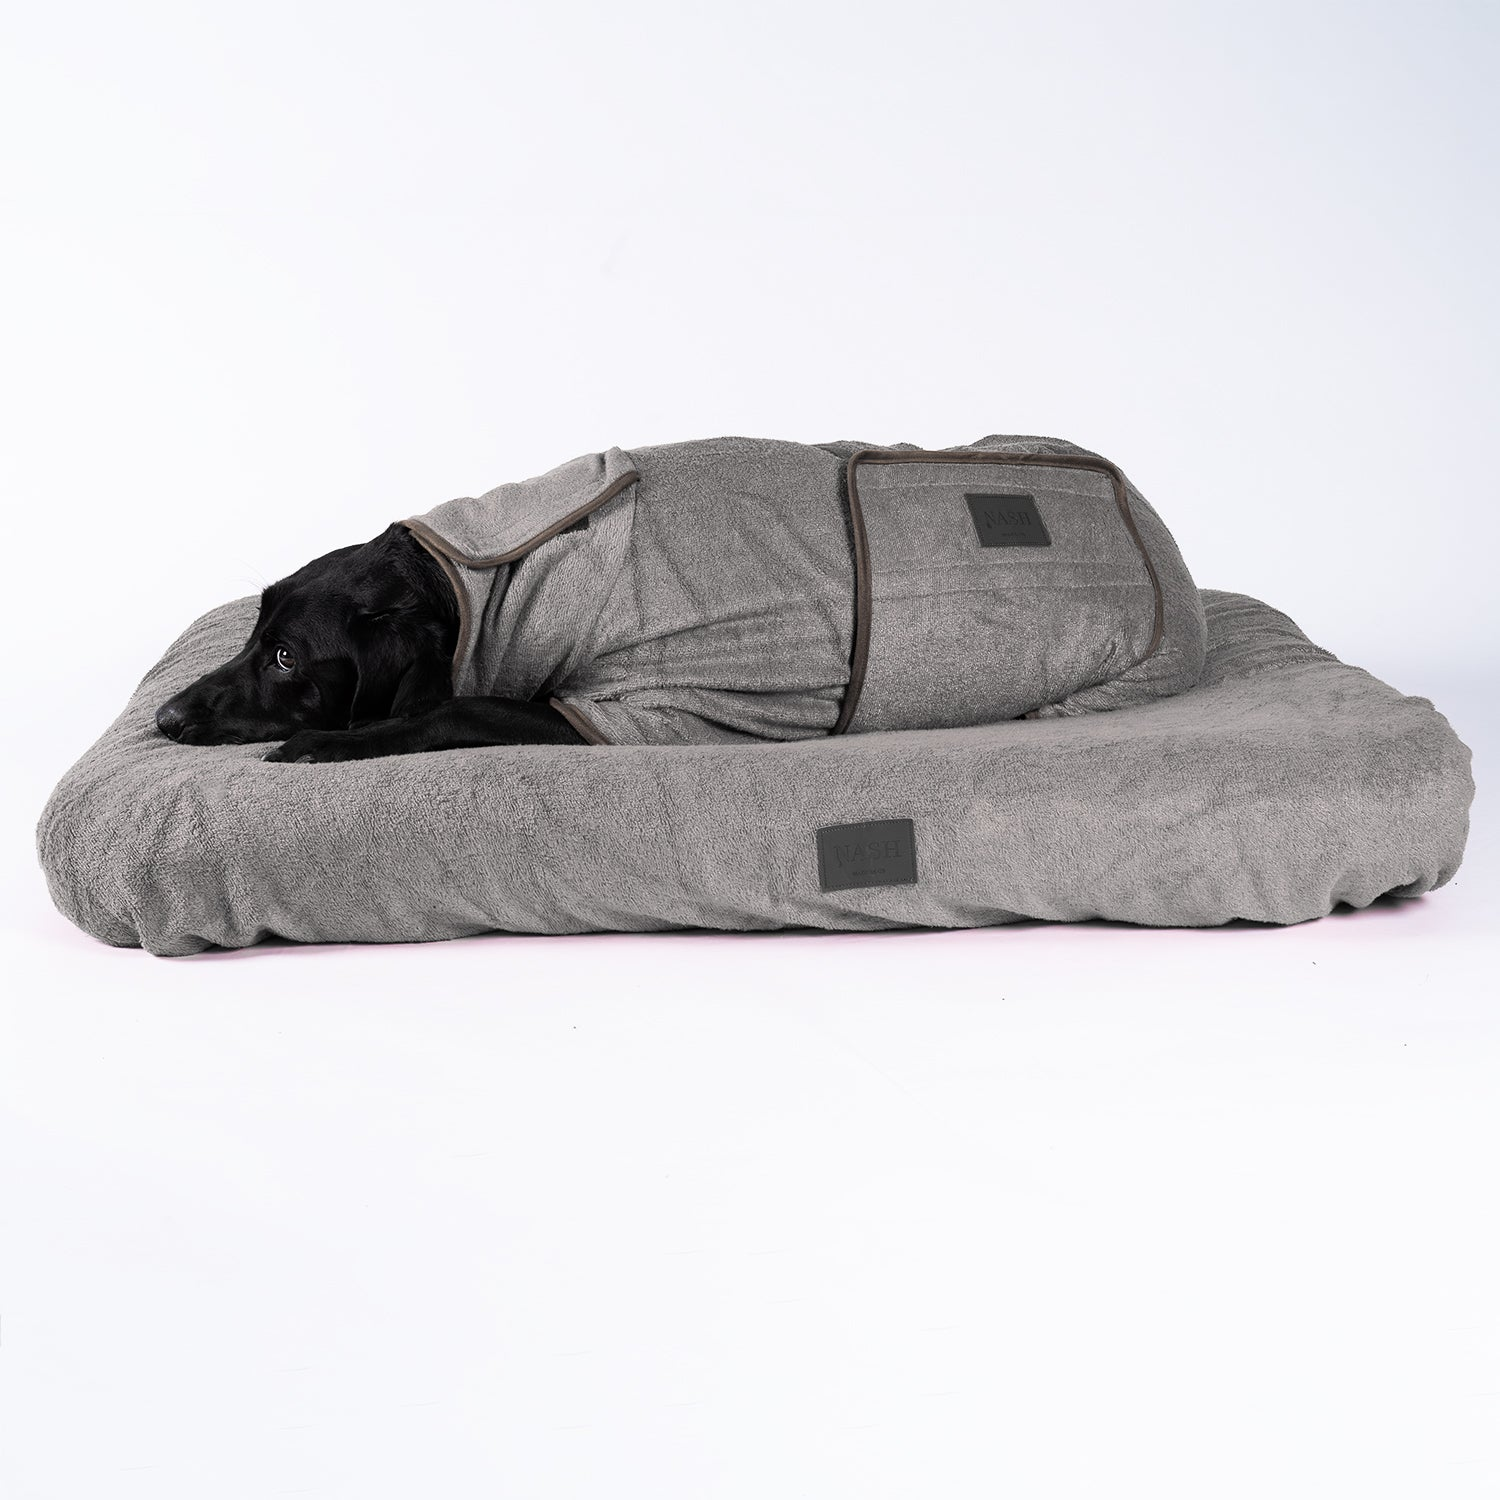 Bamboo Dog Bed Cover - Grey - Shop Bamboo Dog Drying Coats, bed covers, drying mitts & throw Online!